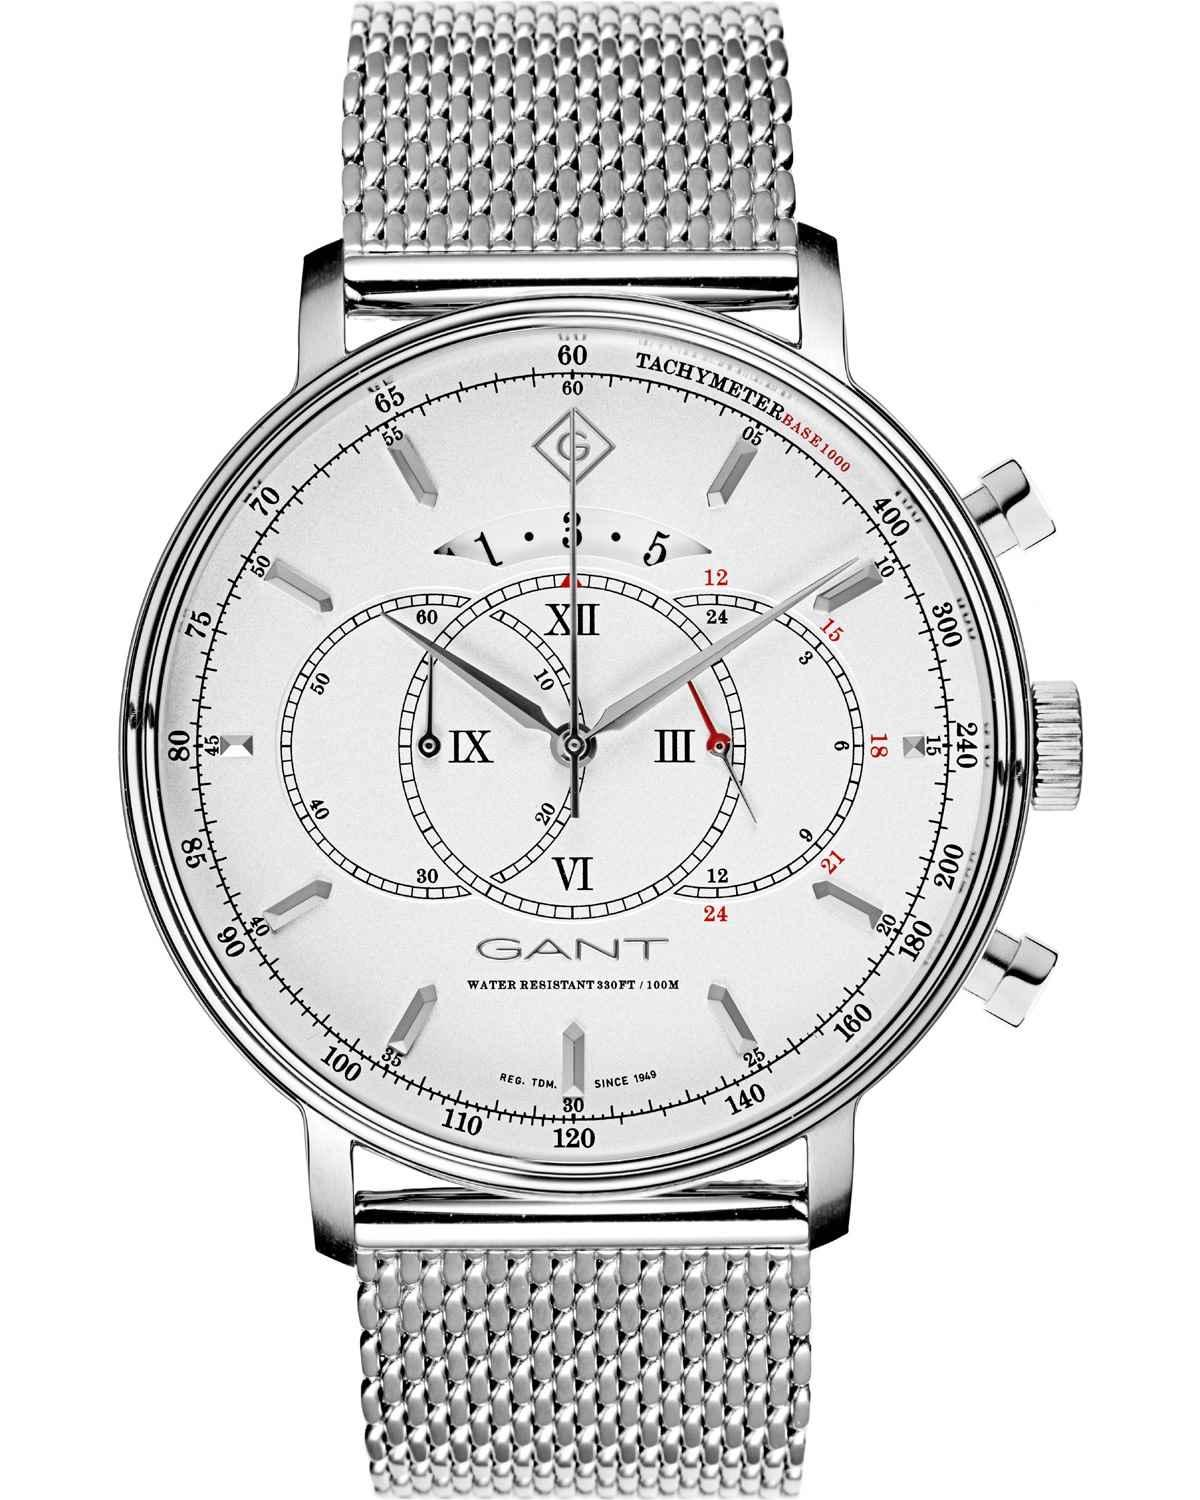 GANT Cameron II Chronograph Mens - G103001, Silver case with Stainless Steel Bracelet